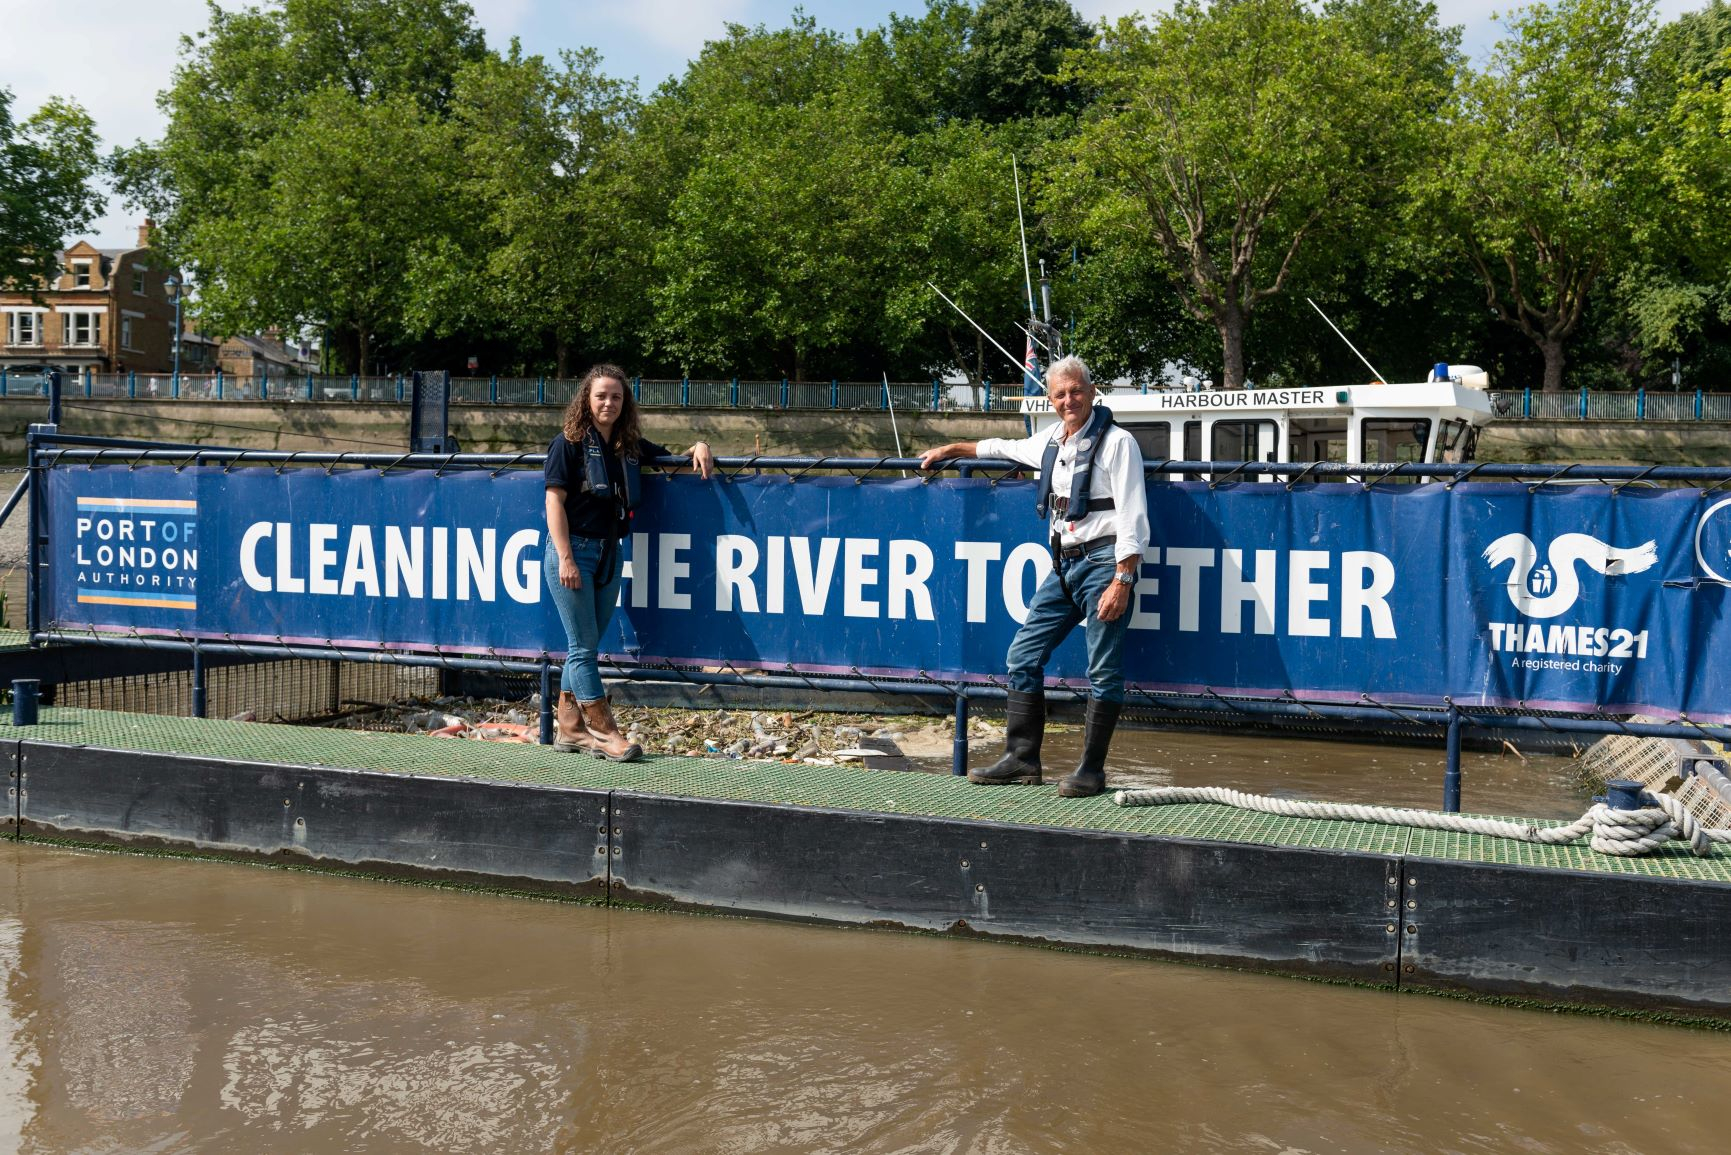 Rose's return: explorer back on river for update on Cleaner Thames campaign